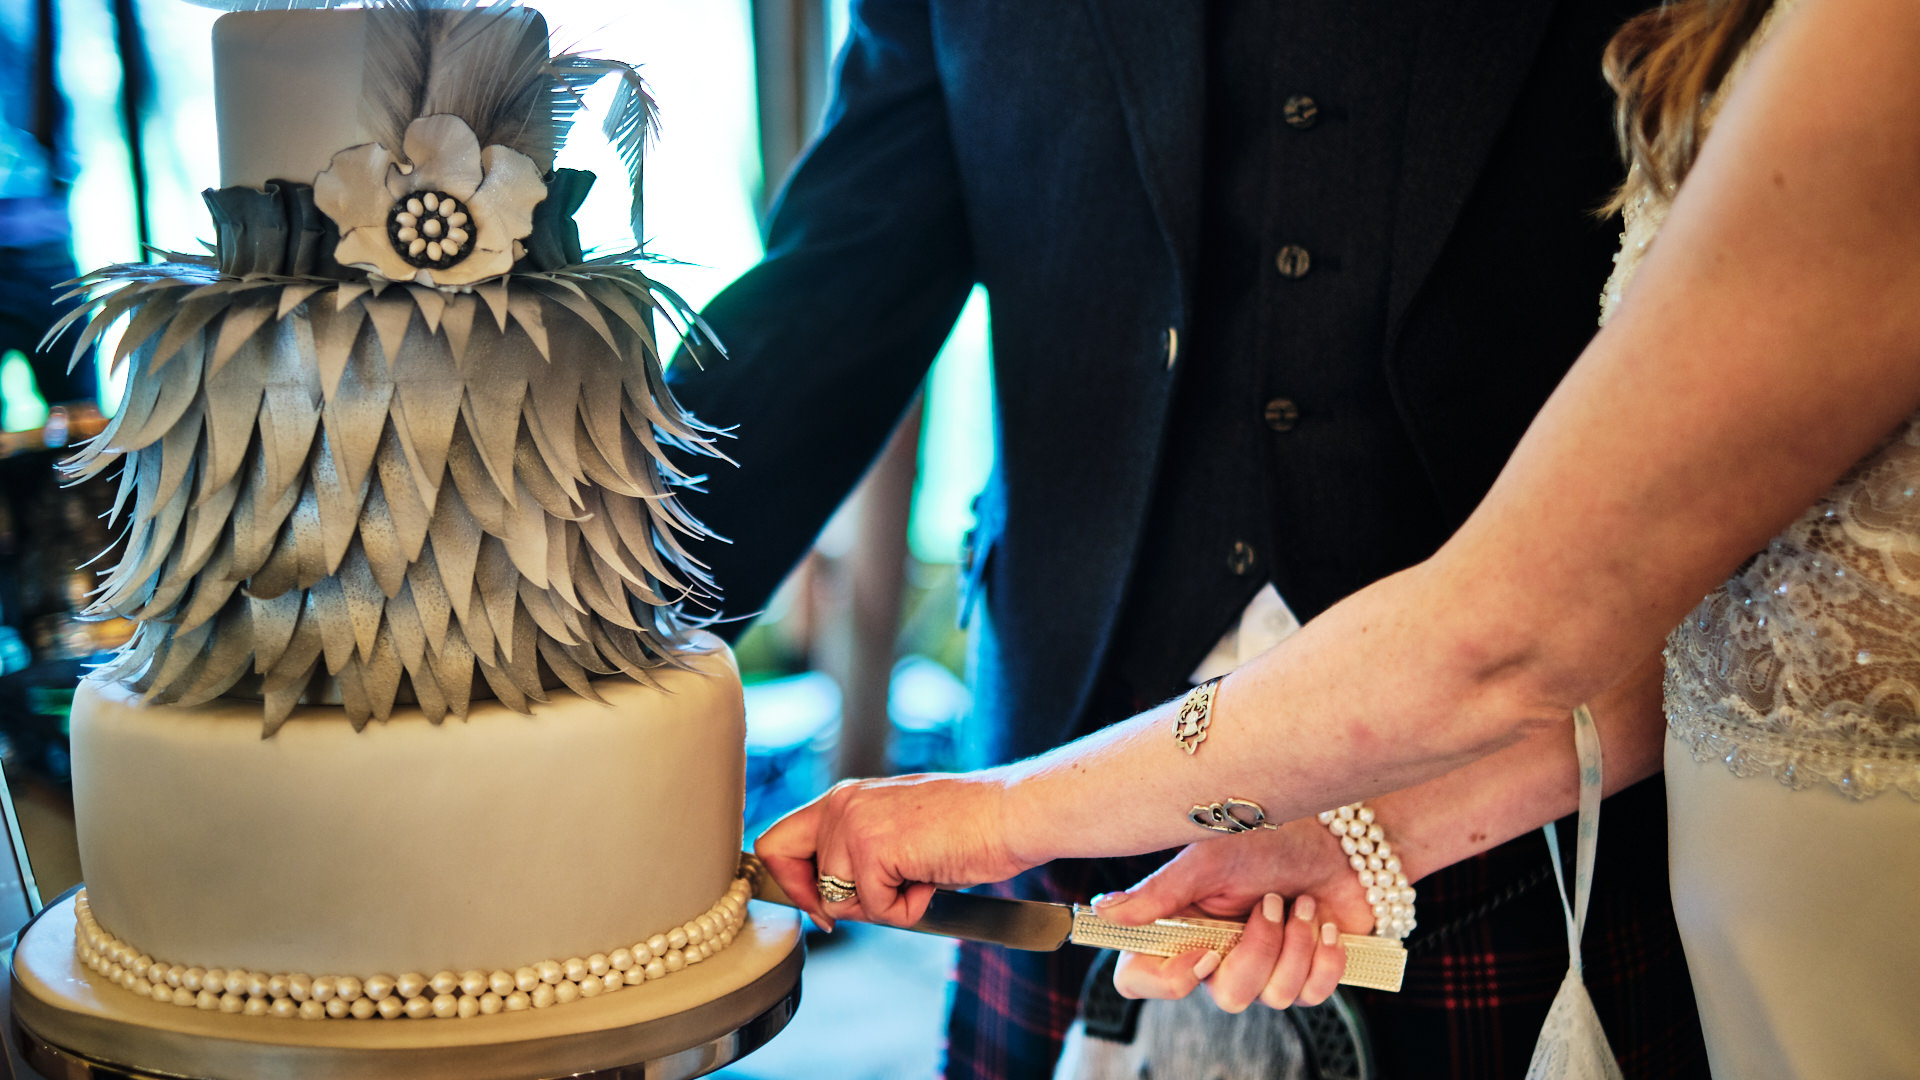 colour photograph of a bride and groom's hands as they cut their wedding cake